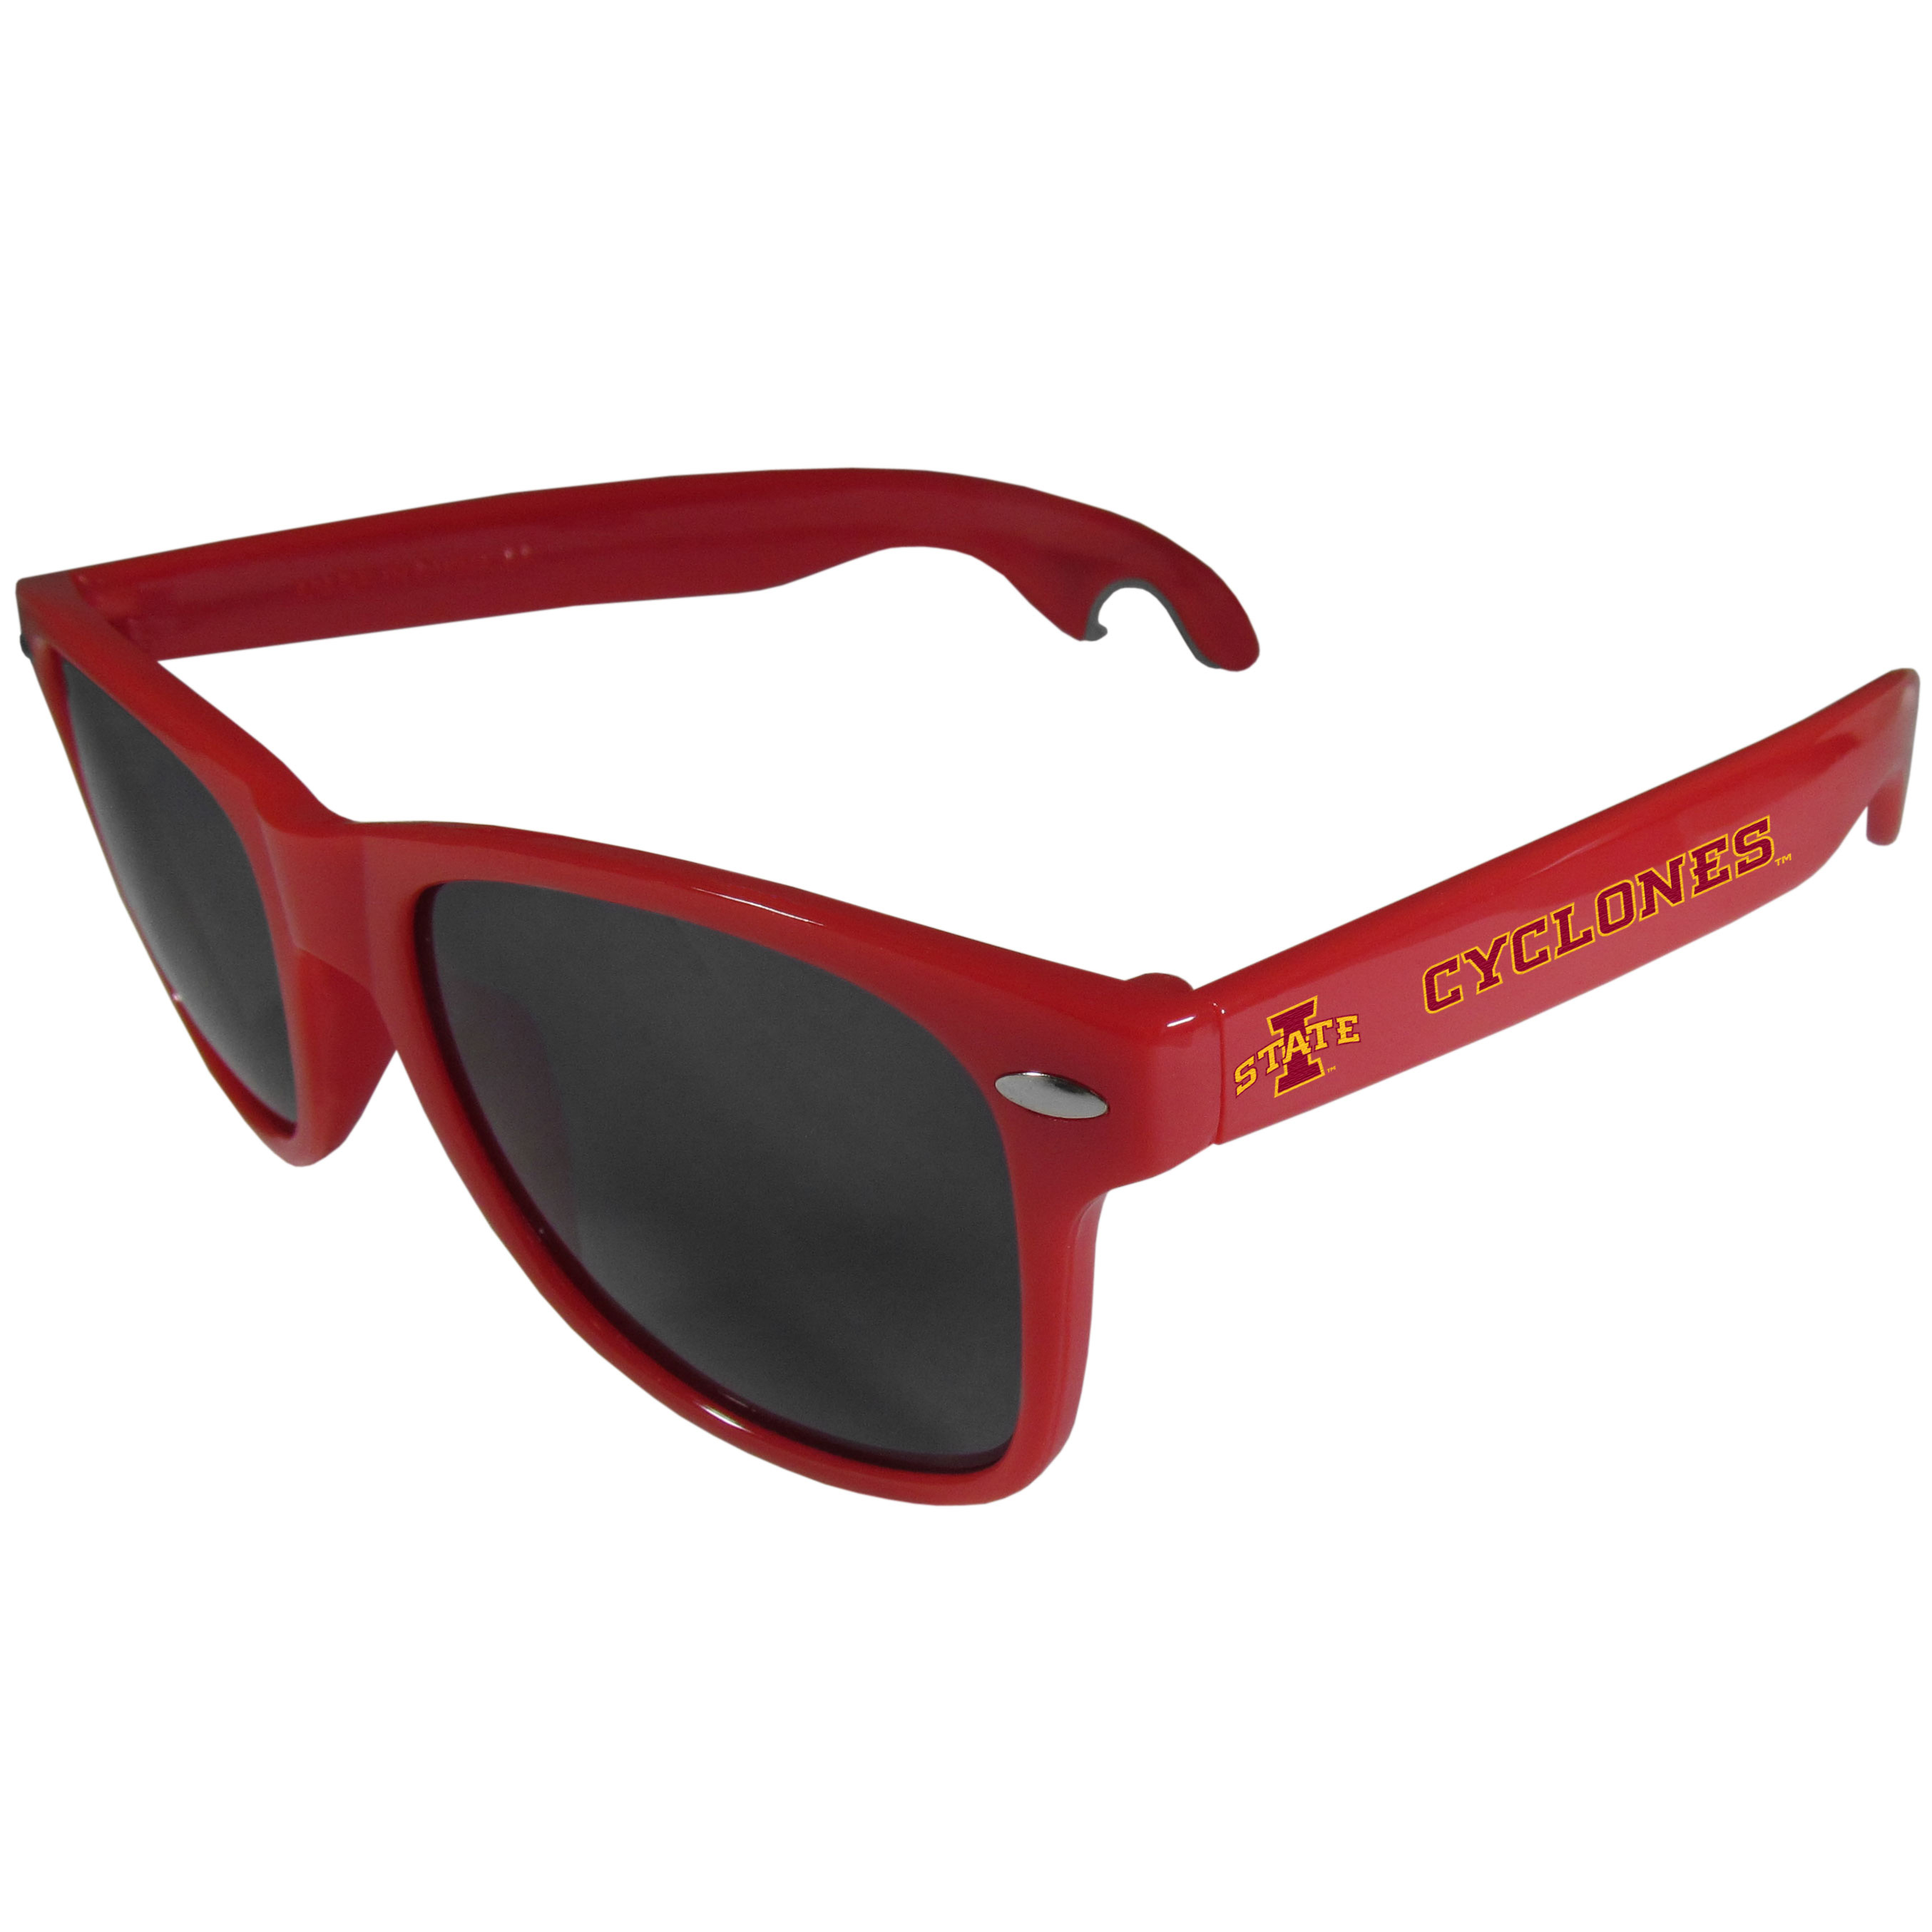 Iowa St. Cyclones Beachfarer Bottle Opener Sunglasses, Red - Seriously, these sunglasses open bottles! Keep the party going with these amazing Iowa St. Cyclones bottle opener sunglasses. The stylish retro frames feature team designs on the arms and functional bottle openers on the end of the arms. Whether you are at the beach or having a backyard BBQ on game day, these shades will keep your eyes protected with 100% UVA/UVB protection and keep you hydrated with the handy bottle opener arms.